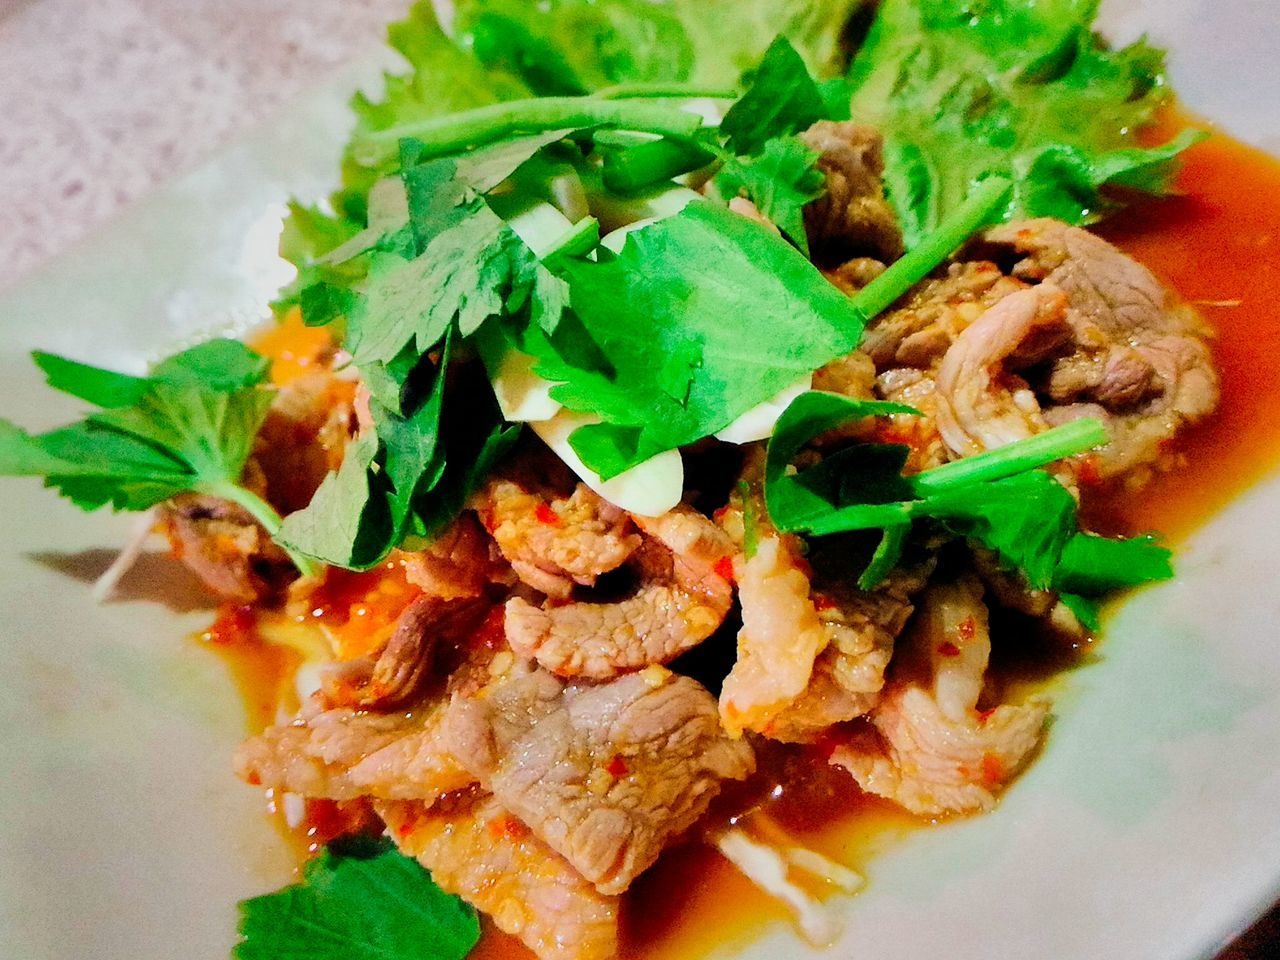 Thai Spicy Pork Salad Healthy Eating Food Freshness Spicy Thai Food Dietfood Asian Food Celebrating Day Of Birth Party